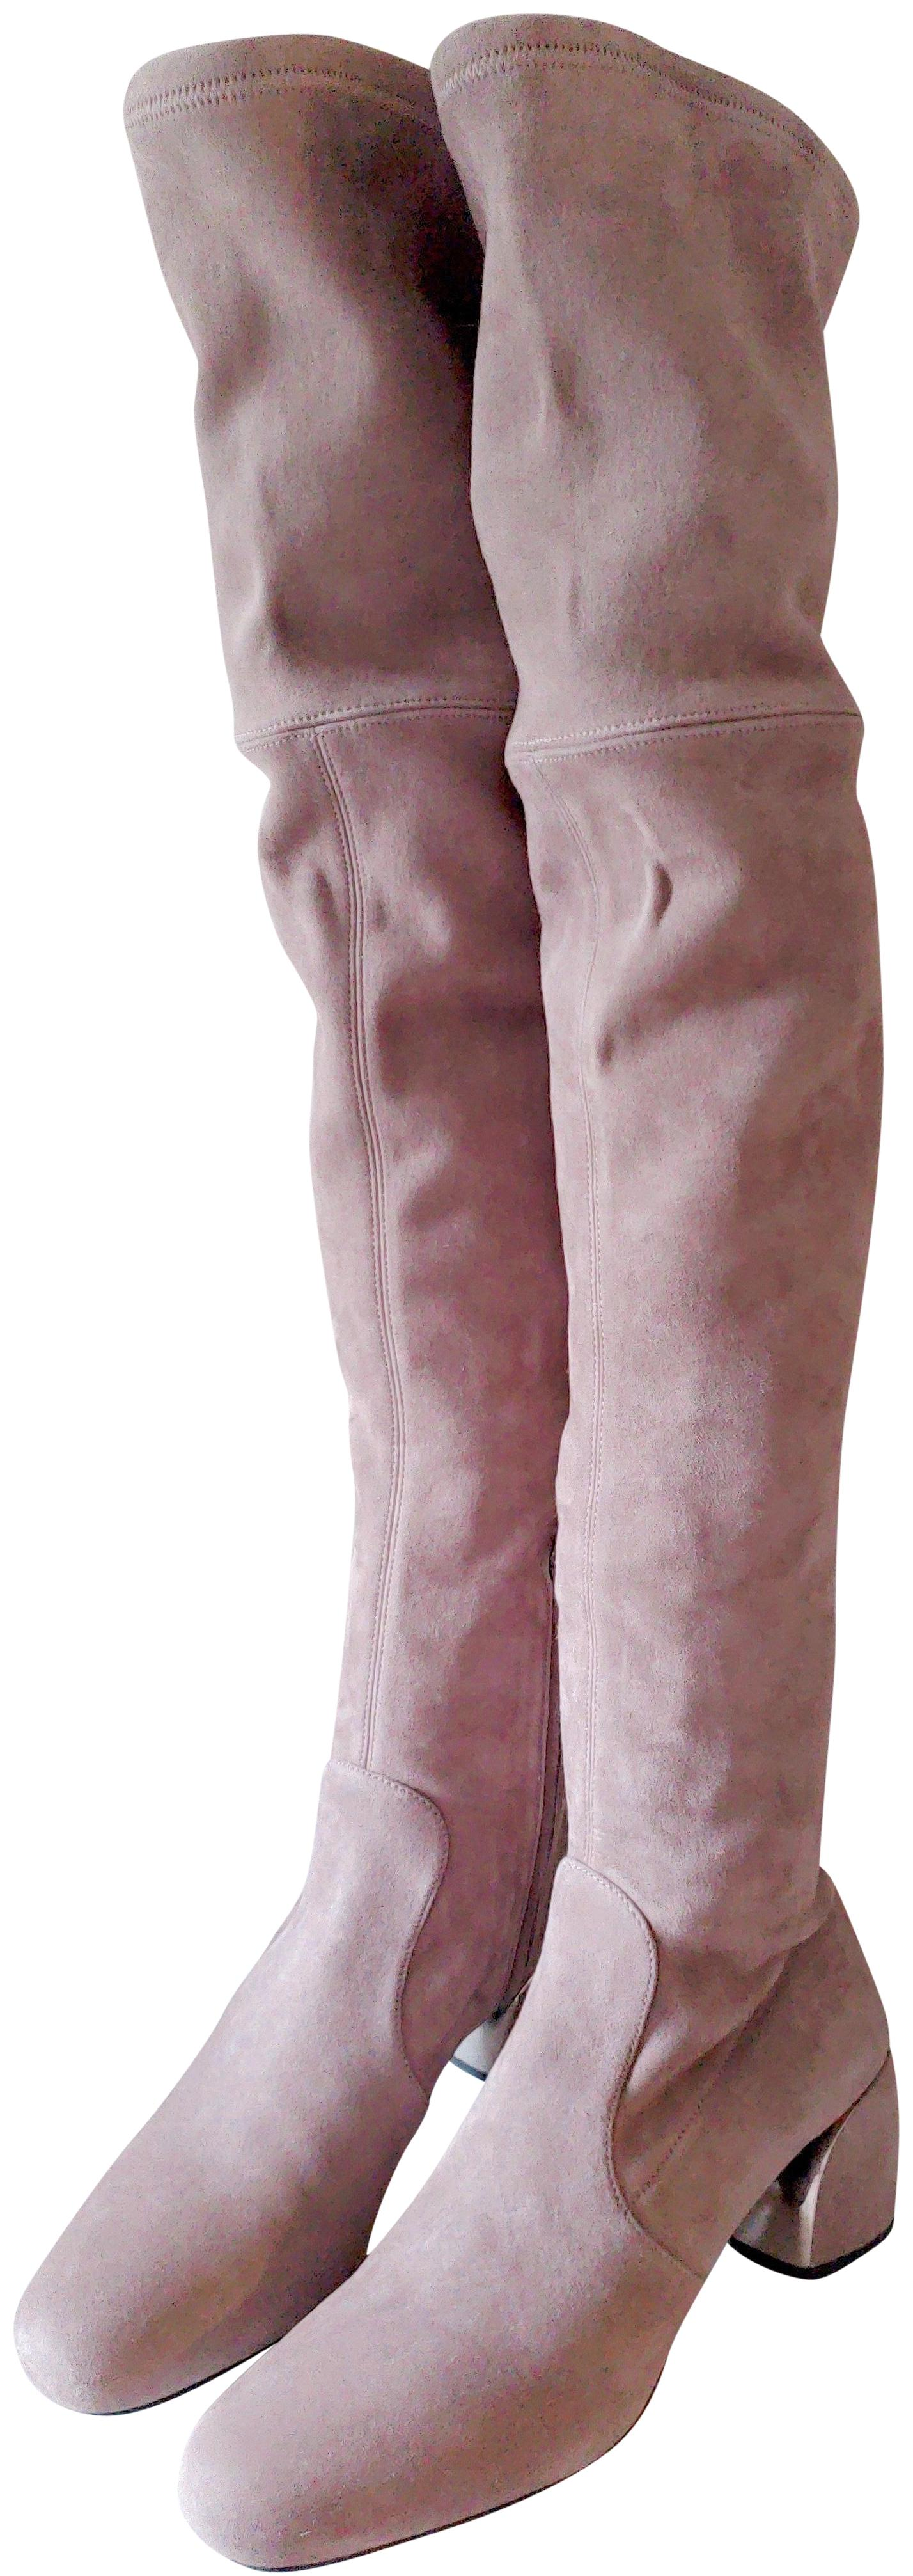 Prada Taupe Over-the-knee Boots/Booties Size EU 38 (Approx. US 8) Regular (M, B)